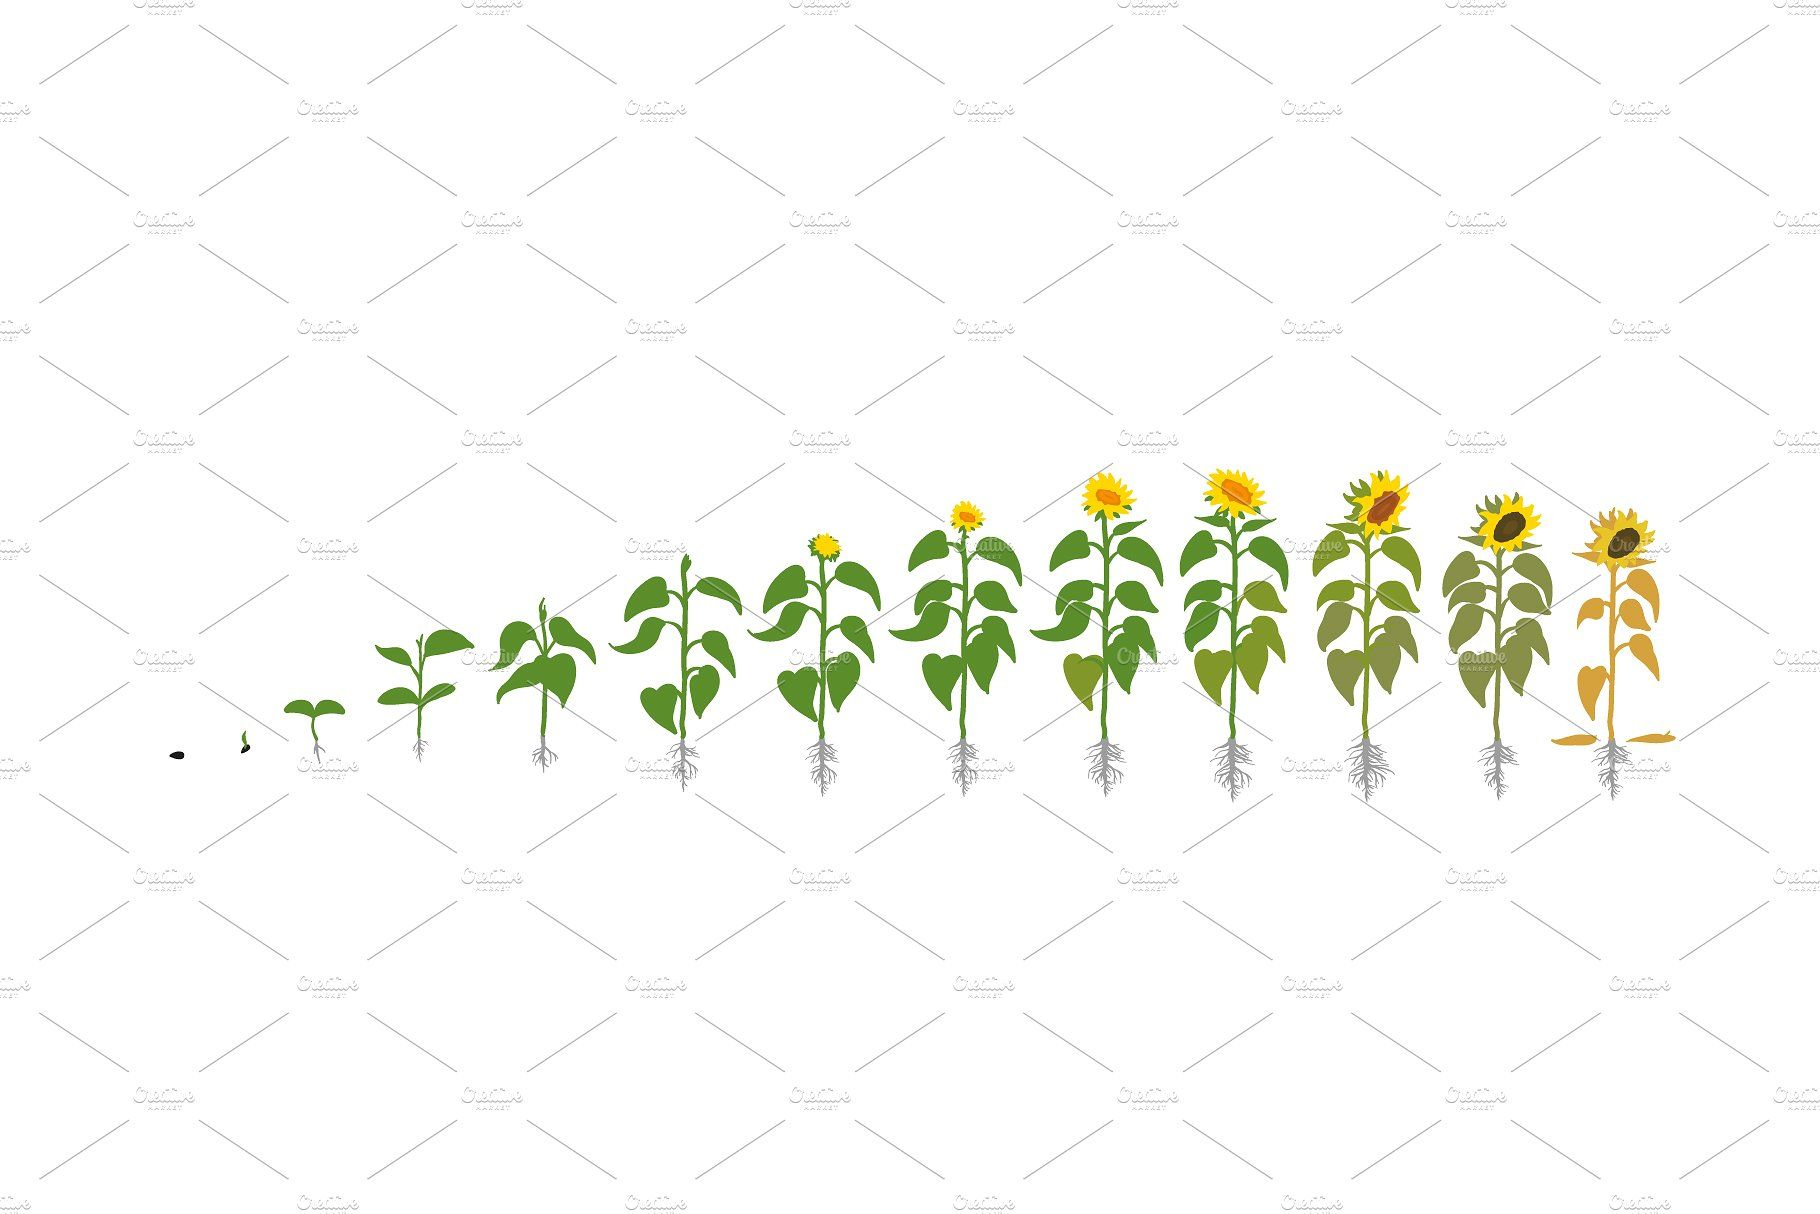 Vegetable Crop Growth Stages Planting Sunflowers Planting Vegetables Growing Plants